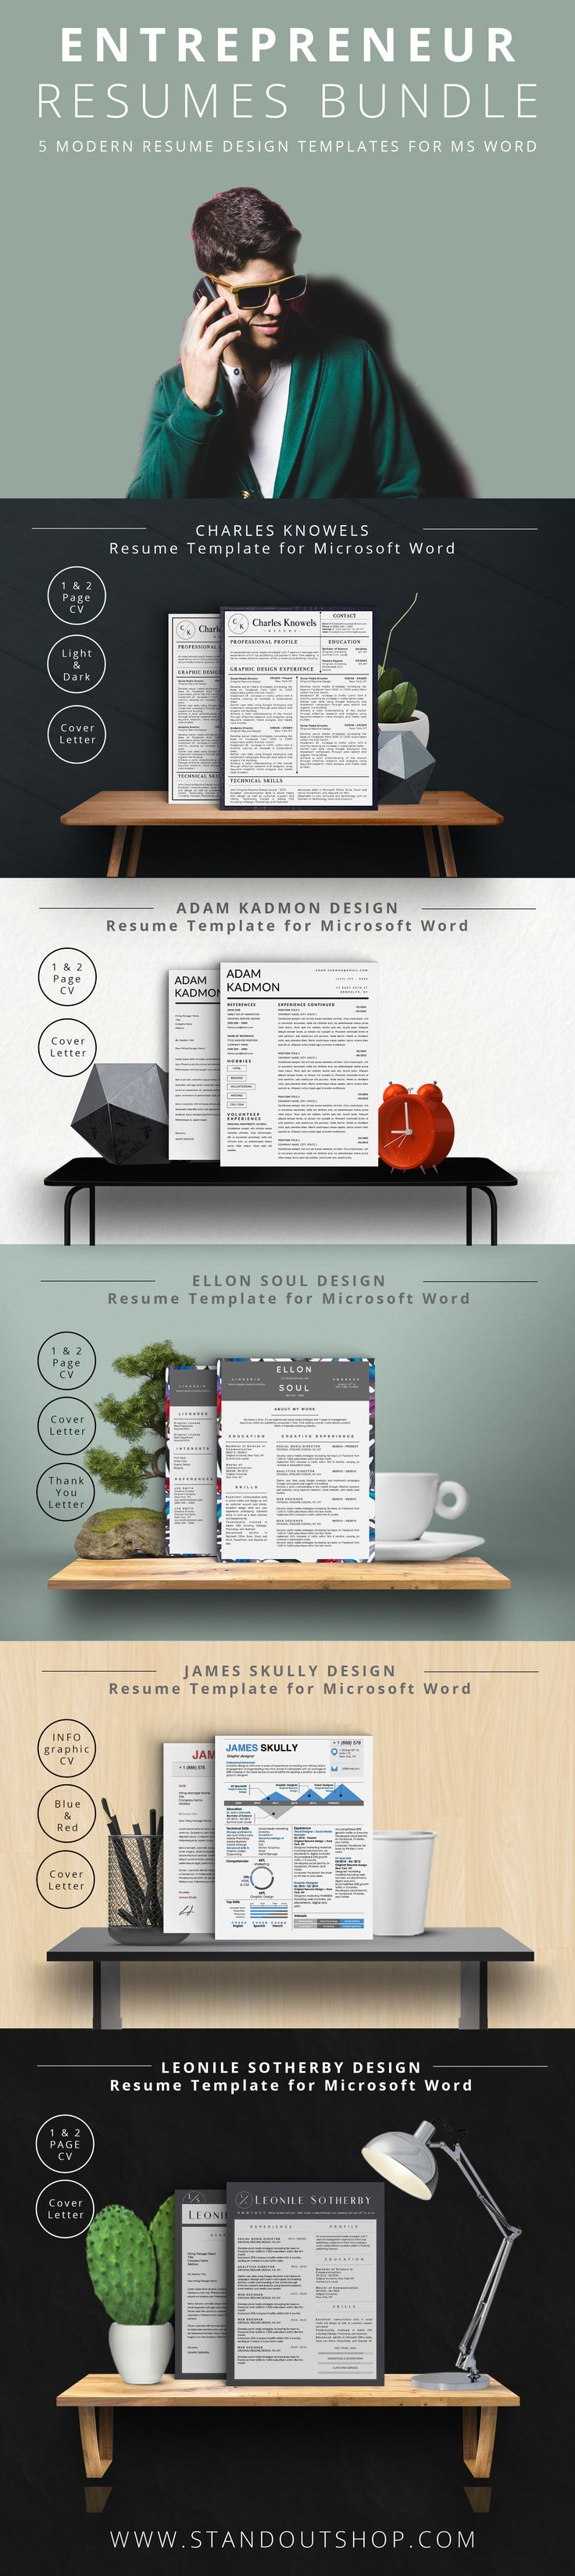 Entrepreneur Resume Collection For Microsoft Word Download